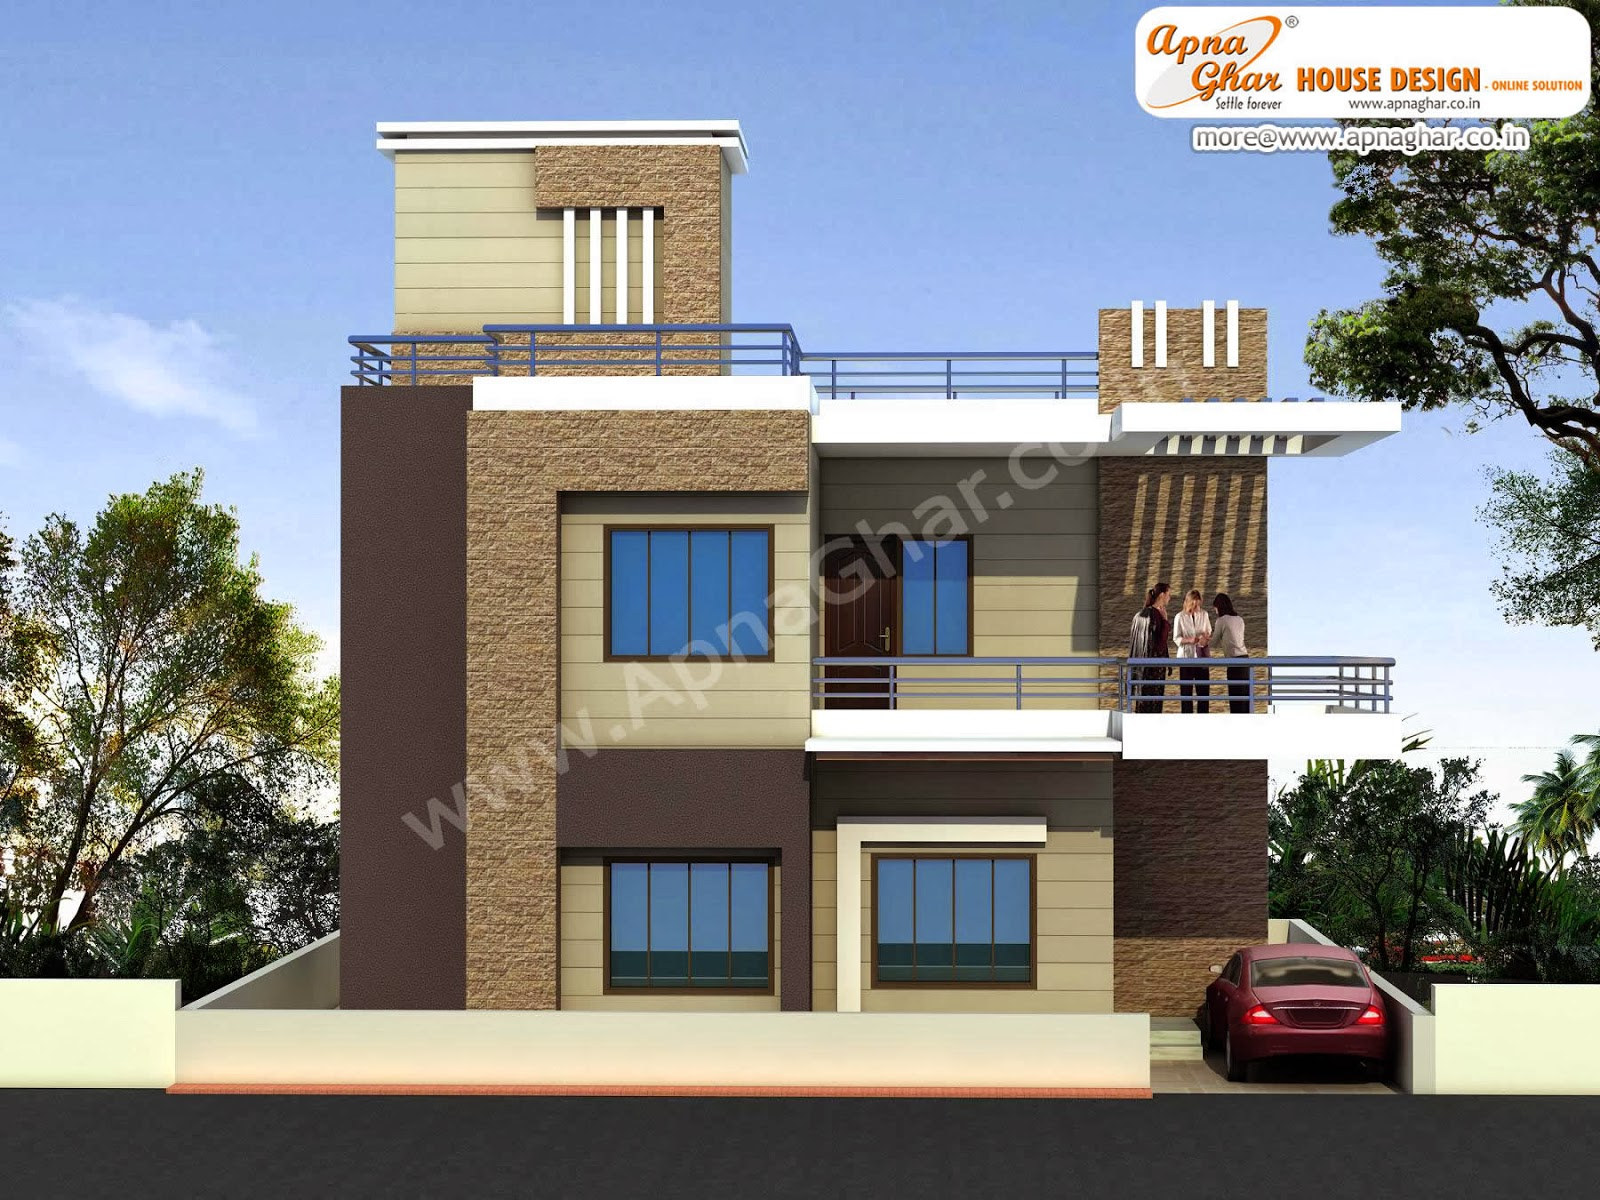 2 storey house design further small modern house exterior design further  modern nipa hut designs philippines